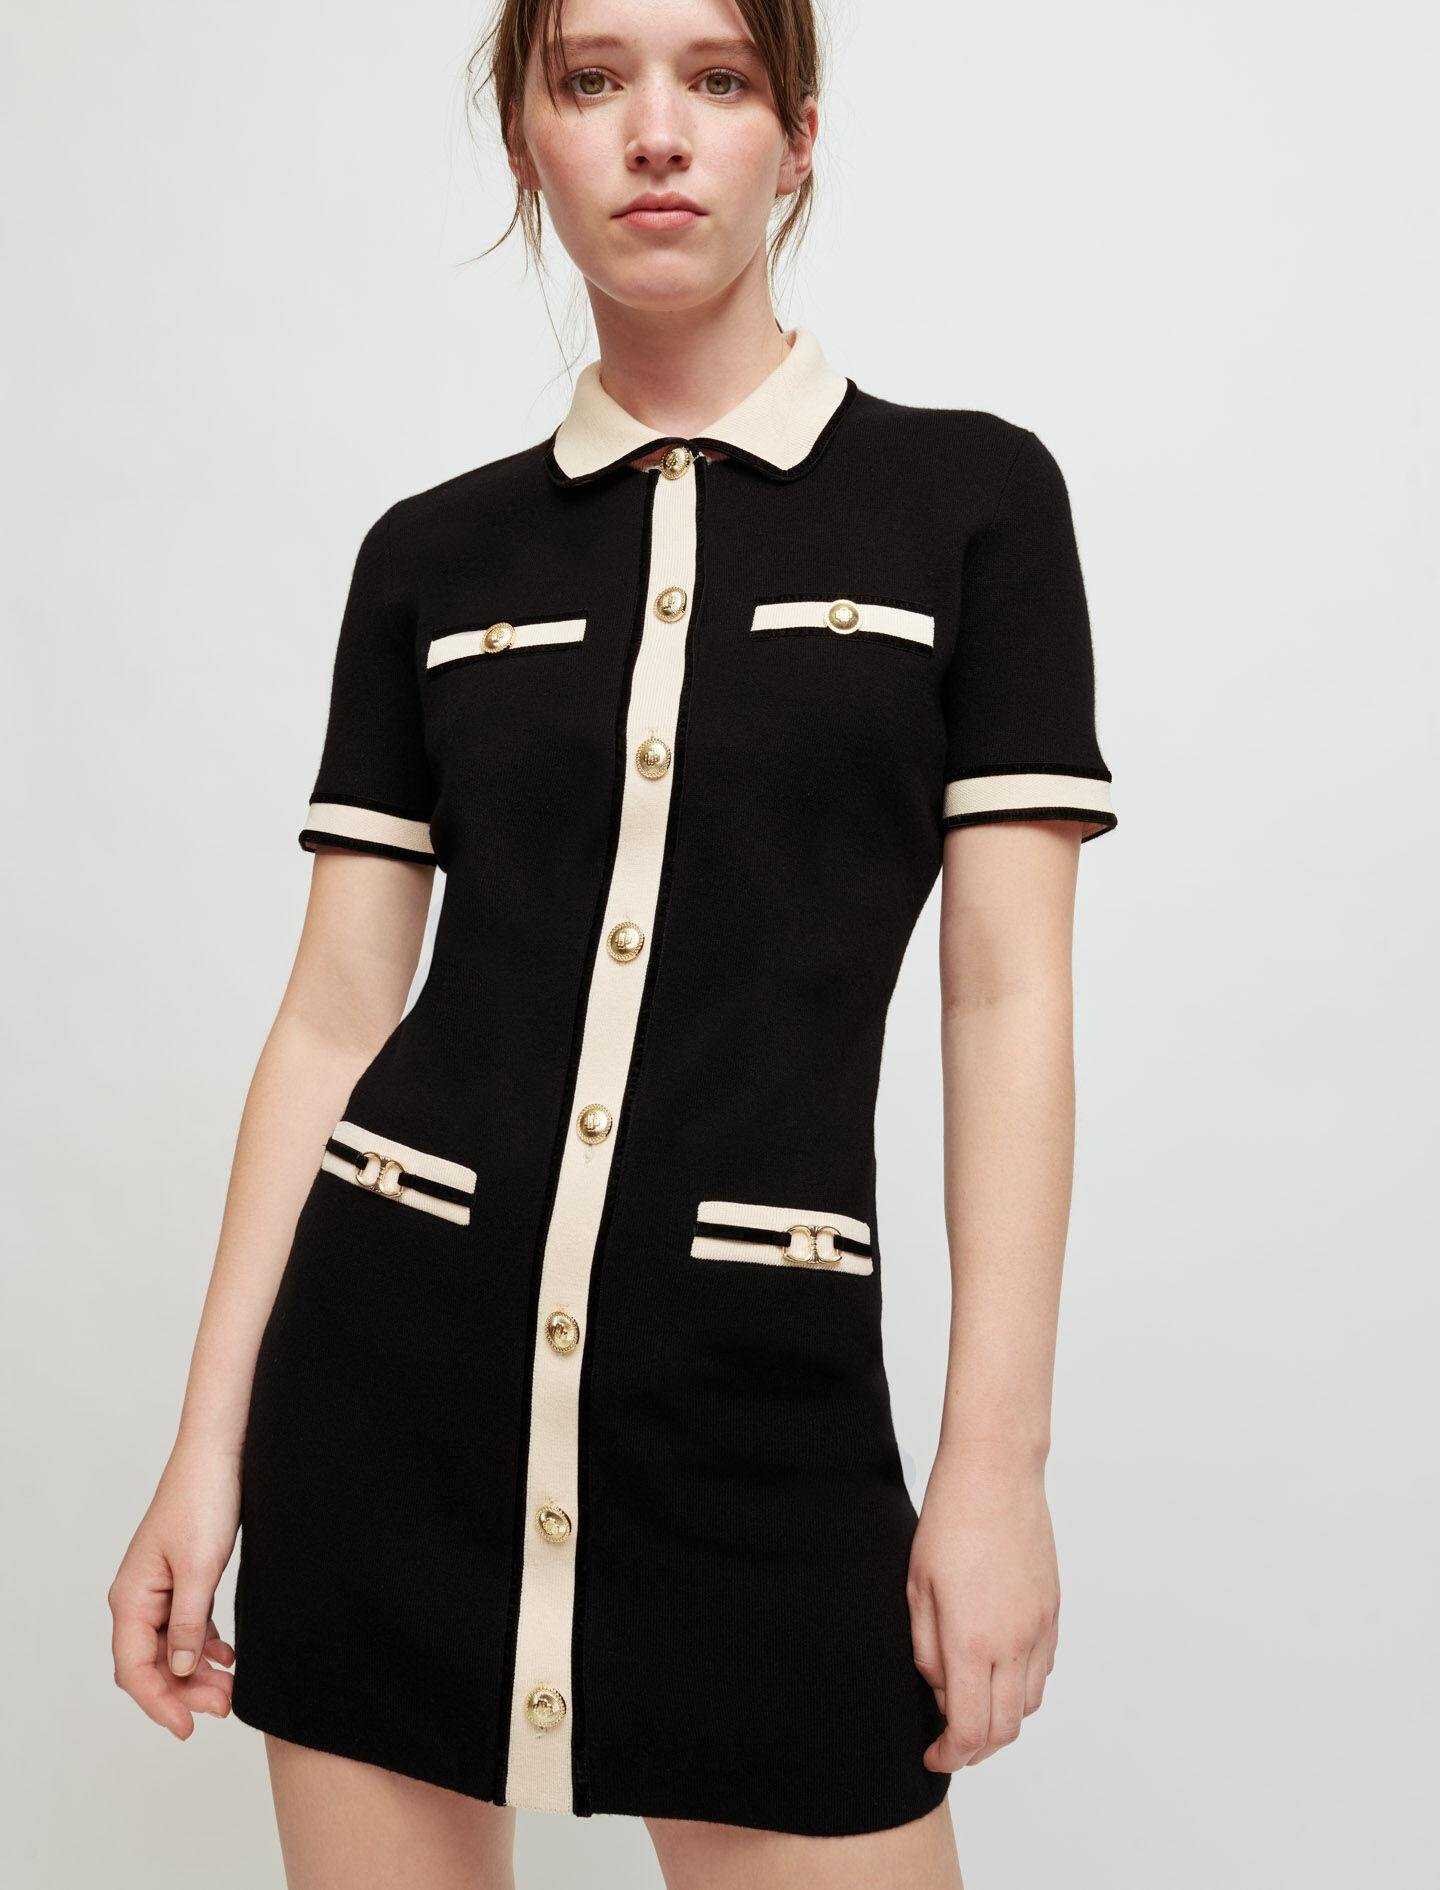 DRESS IN CONTRASTING KNIT AND HORSEBIT